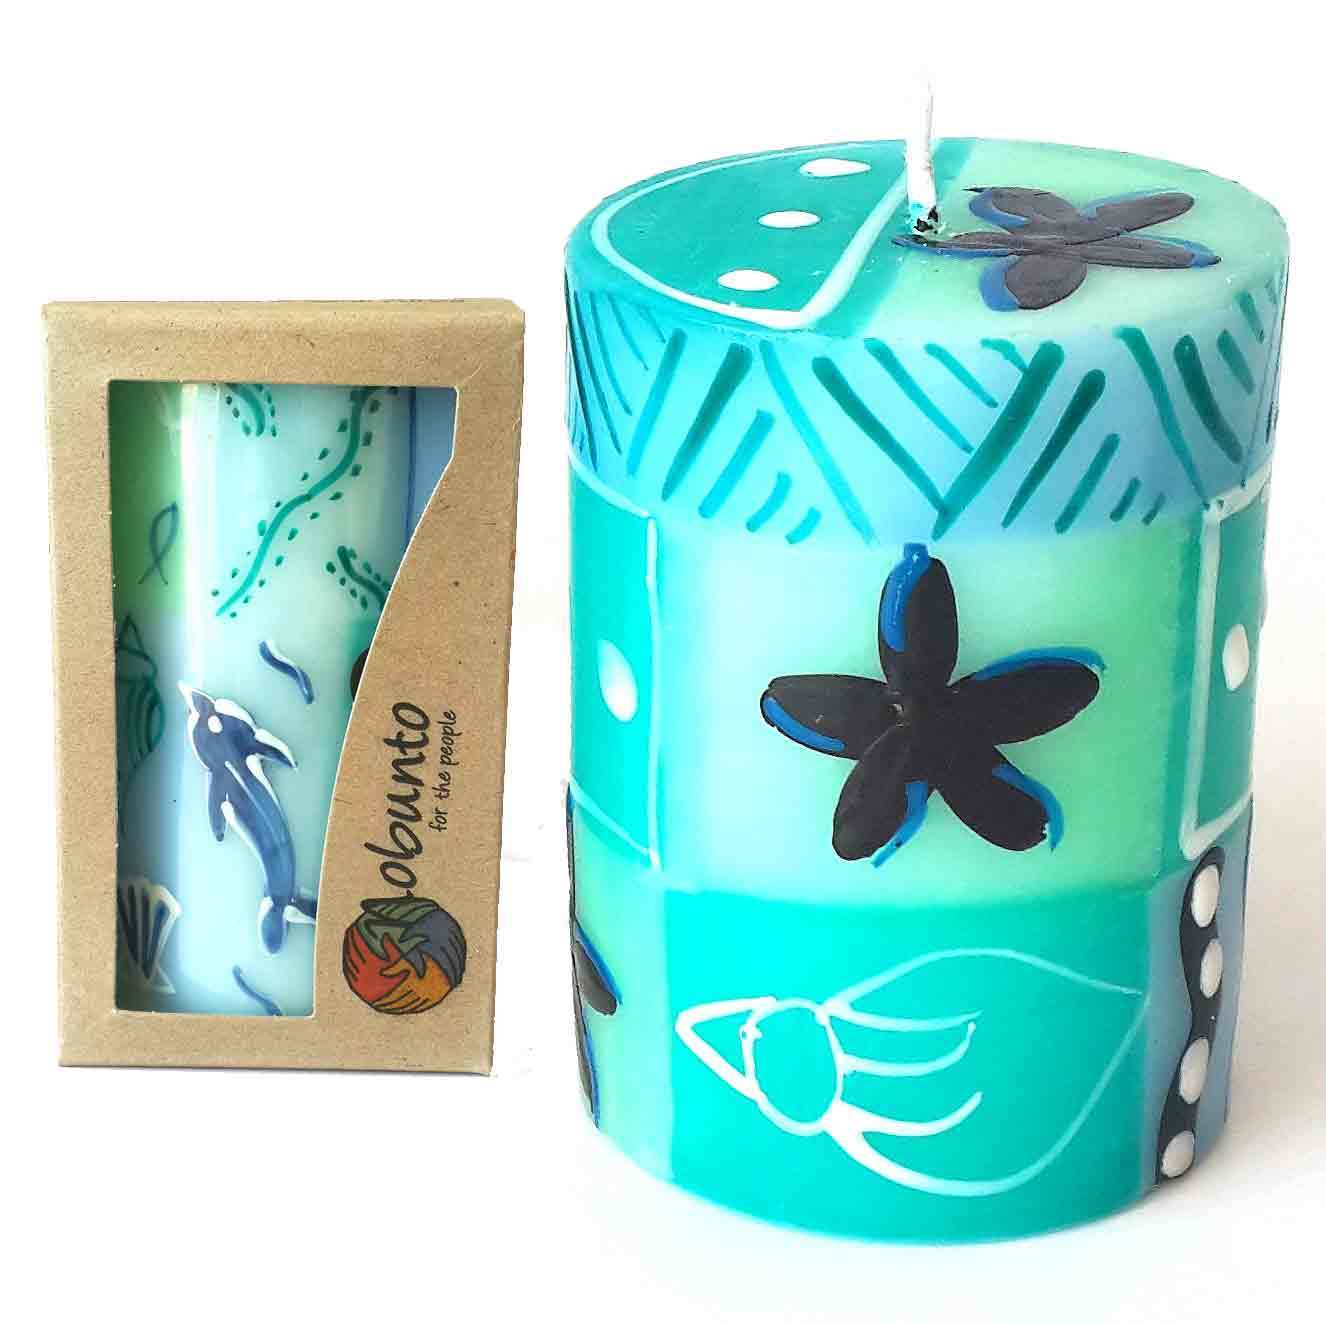 Global Crafts Single Boxed Handmade Pillar Candle (South Africa)